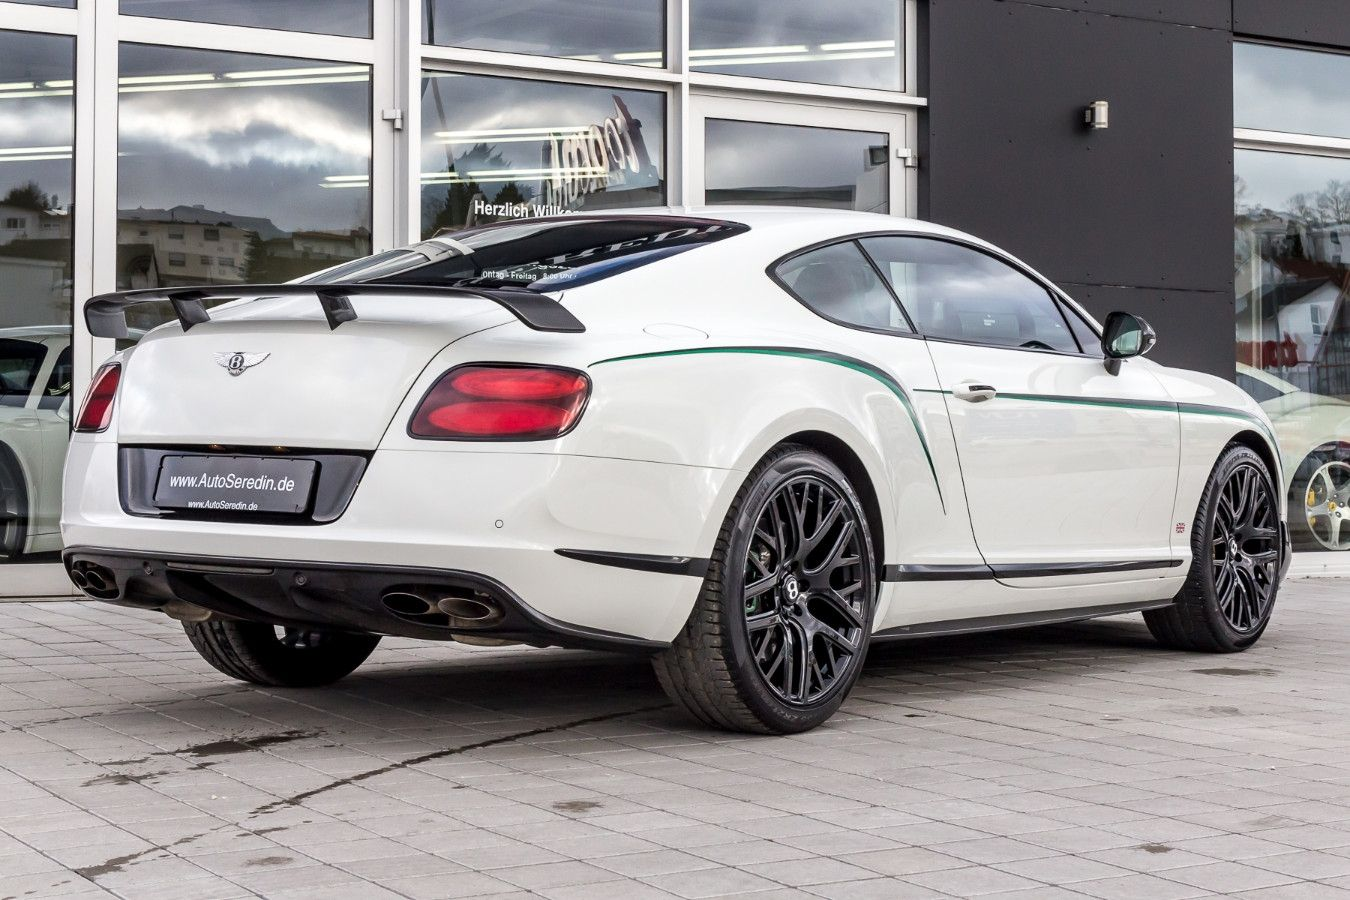 Top 25 best bentley continental gt price ideas on pinterest black bentley bentley gt speed and bentley continental price